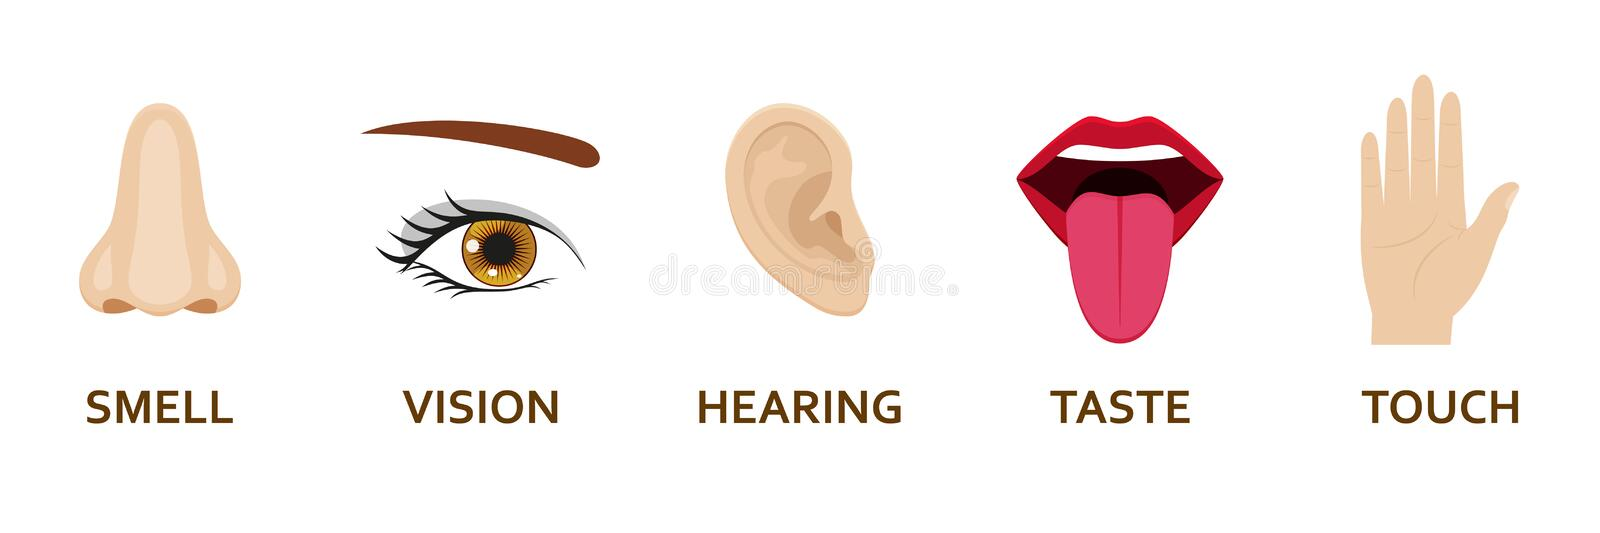 Five human senses icons set. Cartoon design nose, eye, hand, ear and mouth royalty free illustration